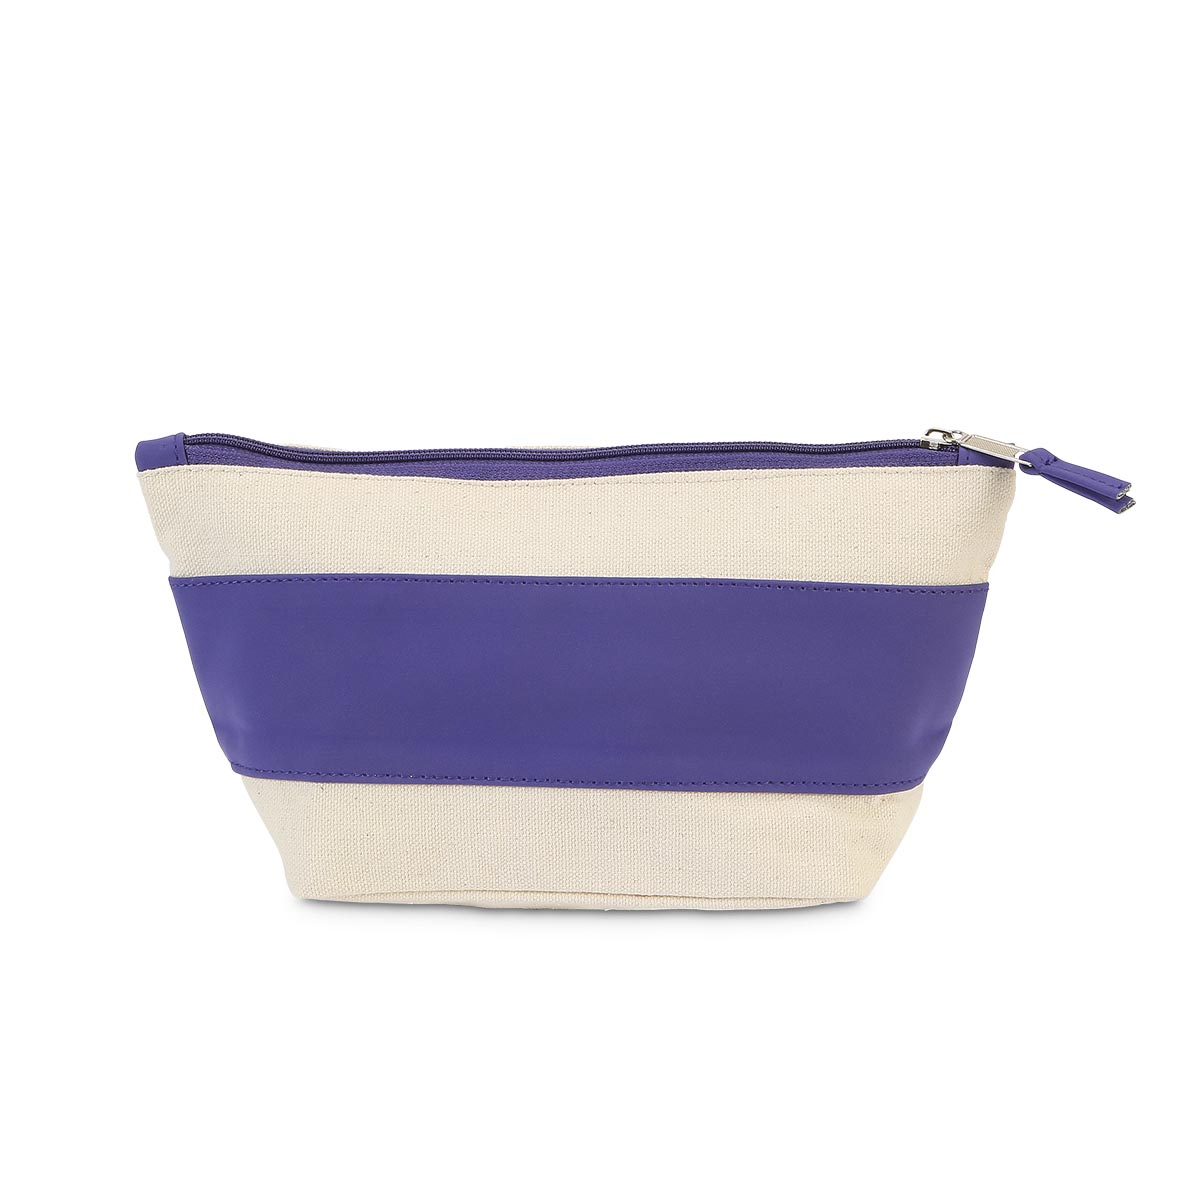 purple suede zipper bag pouch